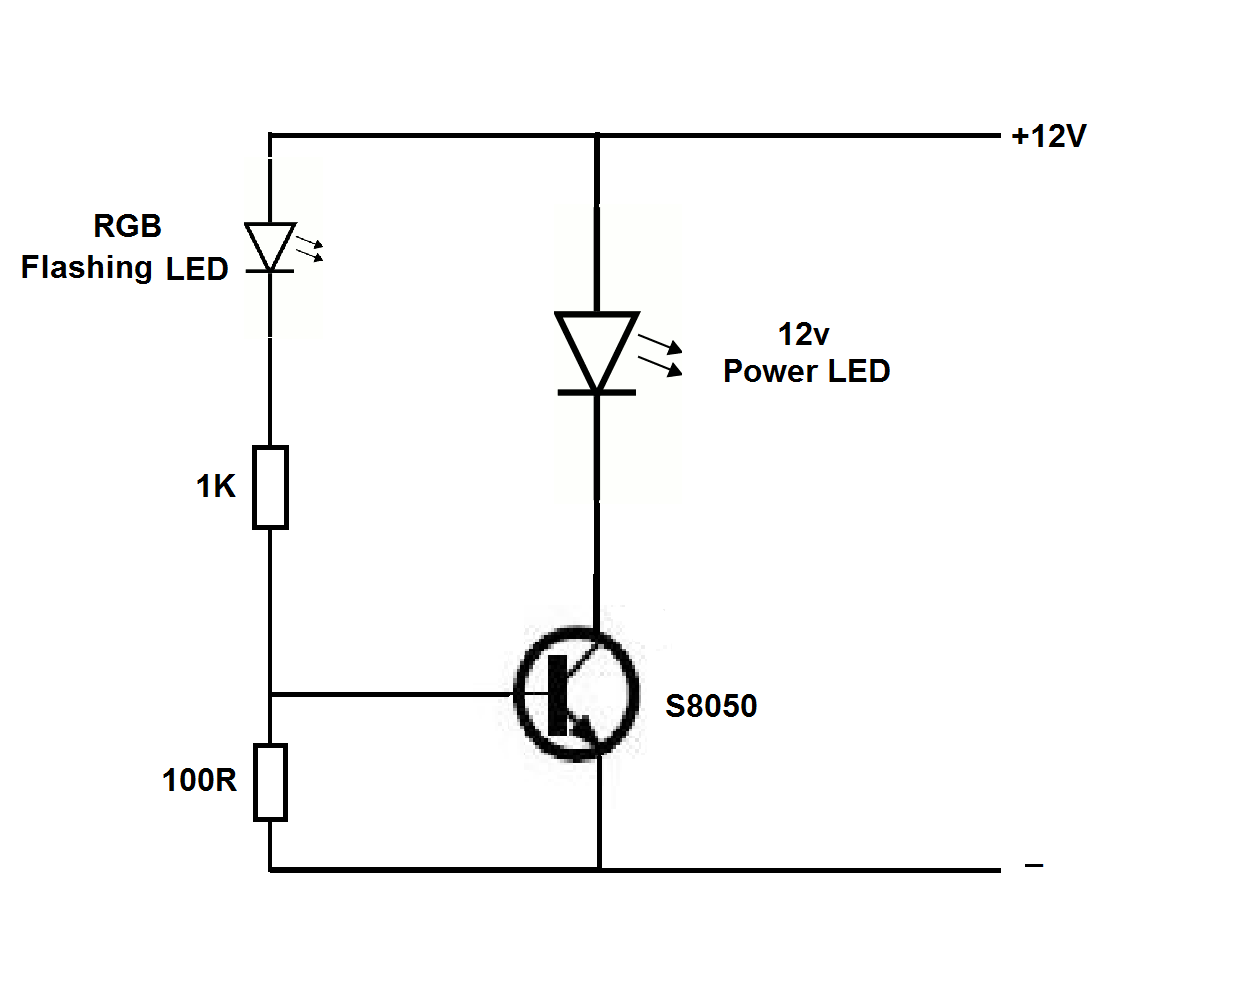 220v Flasher Circuit Wiring Diagram Services Welder 12v Power Led Using Rgb Flashing Simple Projects Rh Engmousaalkaabi Blogspot Com Breaker Lamp